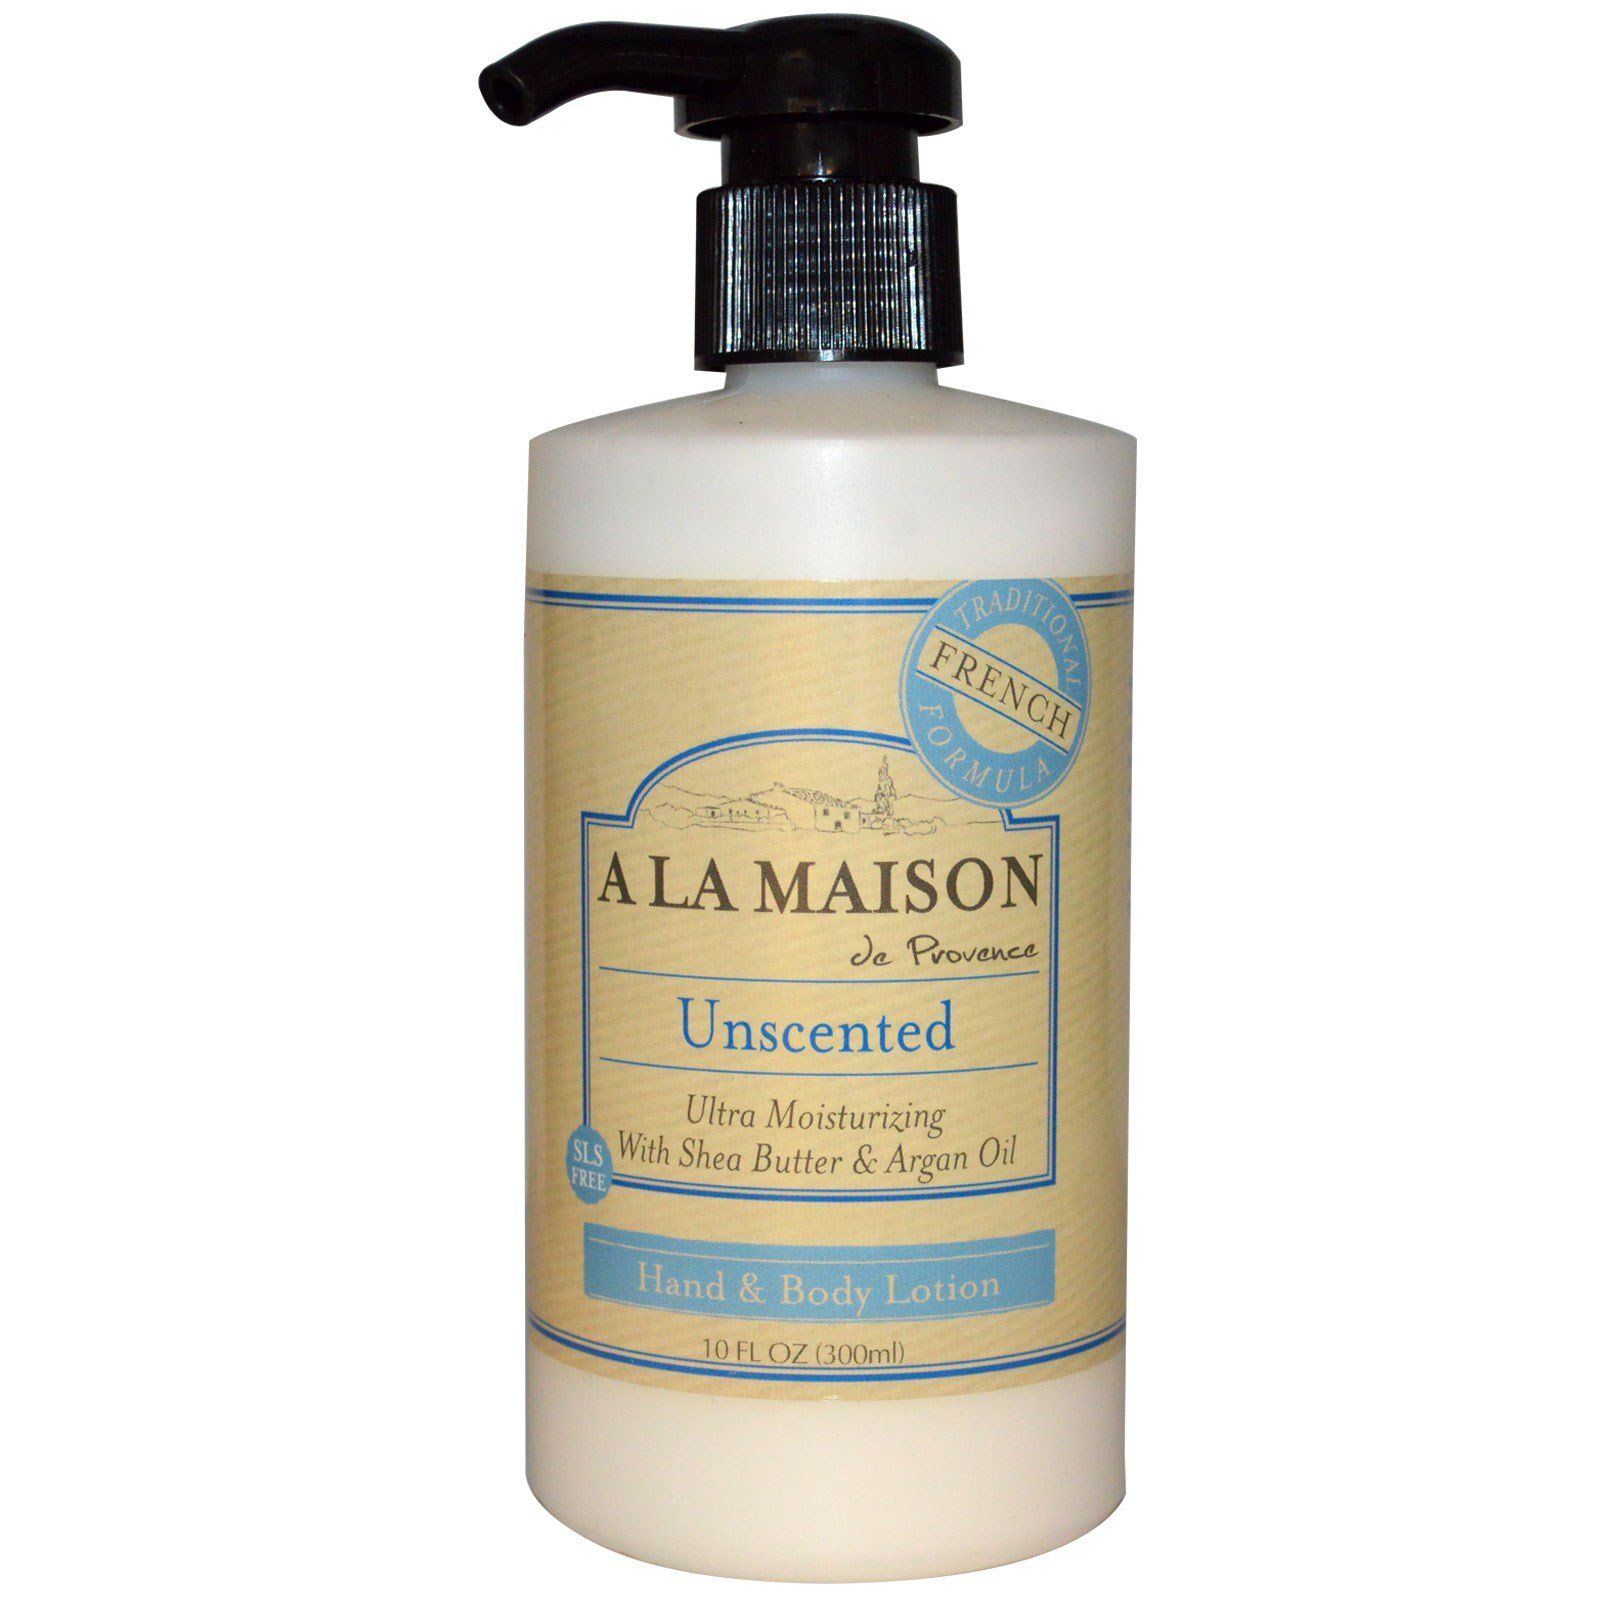 a la maison de provence hand body lotion unscented 10